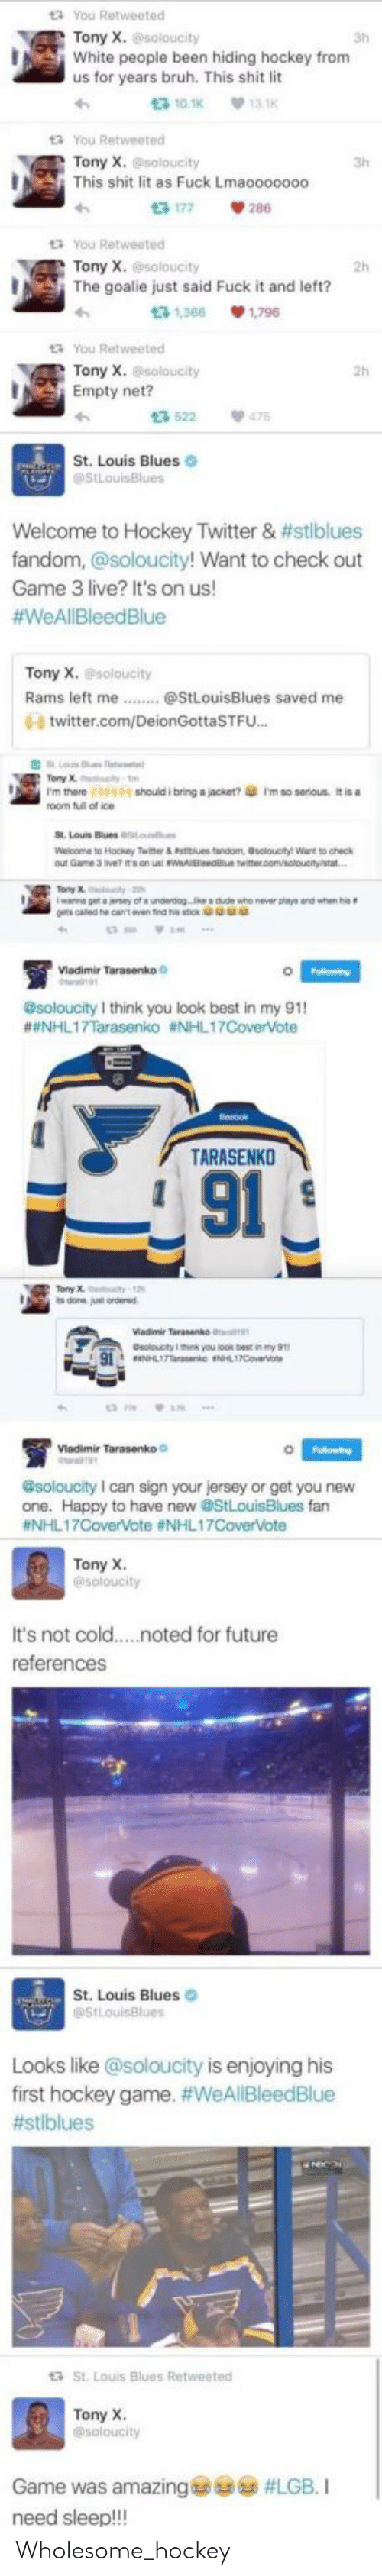 Hockey: t3 You Retweeted  Tony X.soloucity  White people been hiding hockey from  us for years bruh. This shit lit  3h  t3 10.1K  13.1K  t You Retweeted  Tony X. @soloucity  This shit lit as Fuck Lmaooo0000  13 177  tYou Retweeted  Tony X.@soloucity  2h  The goalie just said Fuck it and left?  t3 1,366  1.796  t3 You Retweeted  Tony X. @soloucity  Empty net?  13 522  475  St. Louis Blues  StLouisBlues  Welcome to Hockey Twitter & #stlblues  fandom, @soloucity! Want to check out  Game 3 live? It's on us!  #WeAllBleedBlue  Tony X. soloucity  Rams left me.  @StLouisBlues saved me  0- twitter.com/DeionGottaSTFU...  Falowing  esoloucity I think you oo my 91  #NHL17Tarasenko #NHL17CoverVote  TARASENKO  91  @soloucity I can sign your jersey of get you hew  fan  #NHL17CoverVote #NHL17CoverVote  Tony X  @soloucity  It's not cold  .noted for future  references  St. Louis Blues  @StLouisBlues  Looks like @soloucity is enjoying his  first hockey game. #WeAllBleedBlue  #stlblues  St. Louis Blues Retweeted  Tony X.  @soloucity  Game was amazing  #LGB. I  need sleep!!! Wholesome_hockey